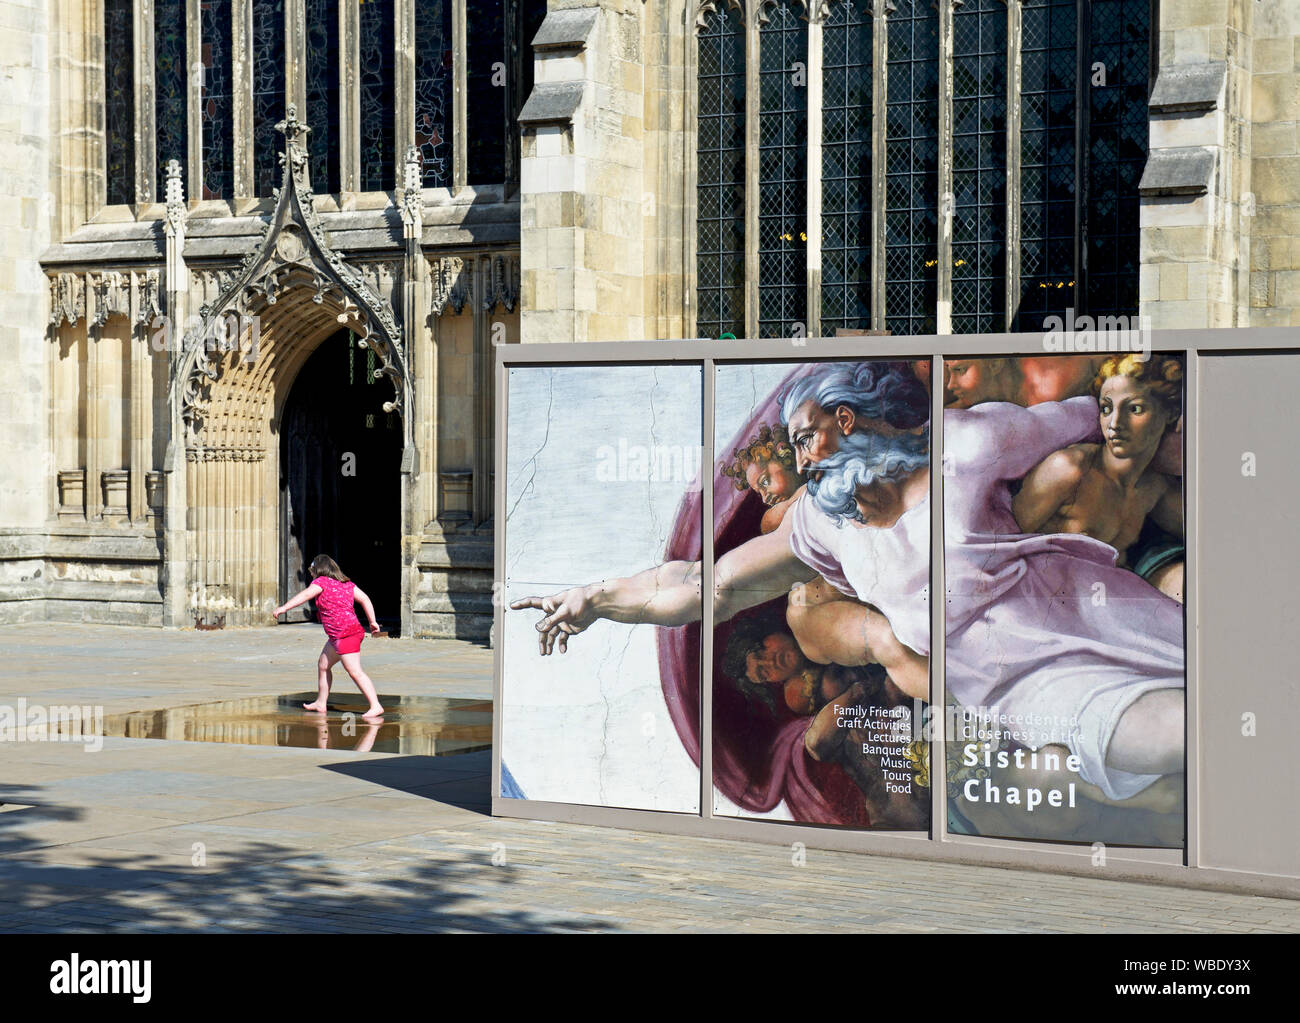 girl-playing-next-to-poster-announcing-an-art-exhibition-of-michaelangelos-work-outside-the-minster-hull-east-yorkshire-england-uk-WBDY3X.jpg